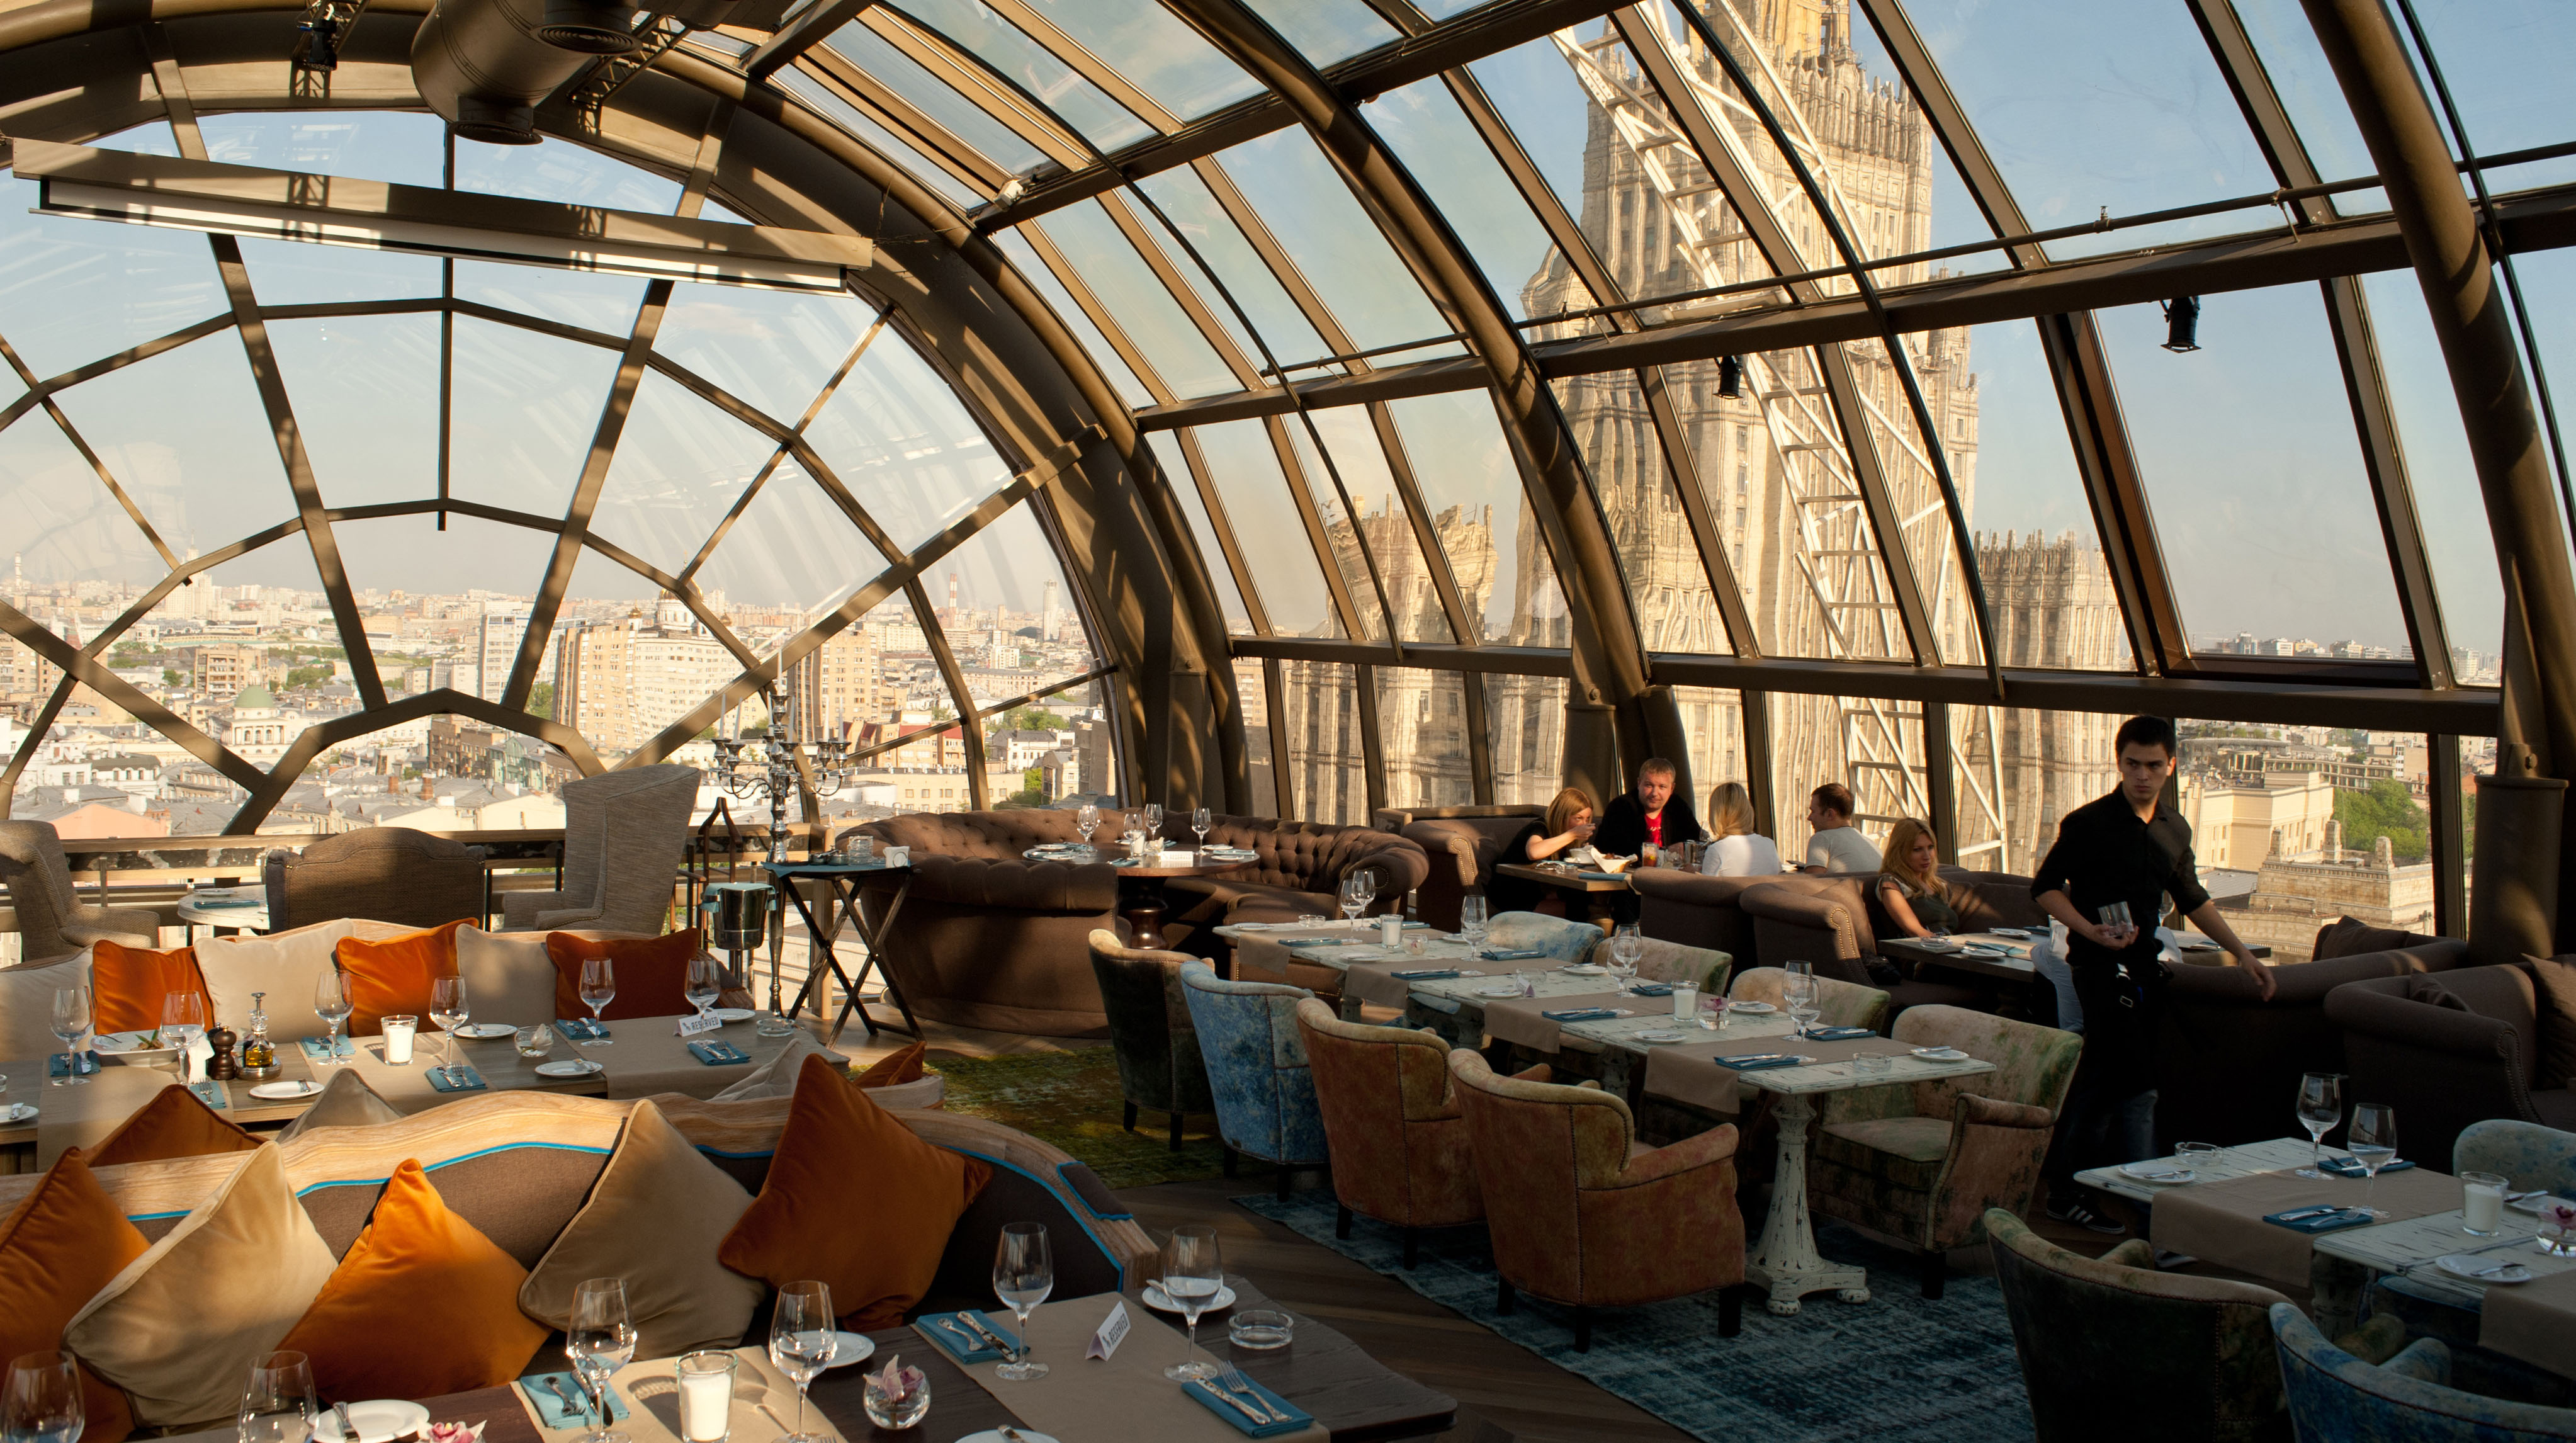 Cafe in Moscow on the roof - a great romantic surprise for the second half 21